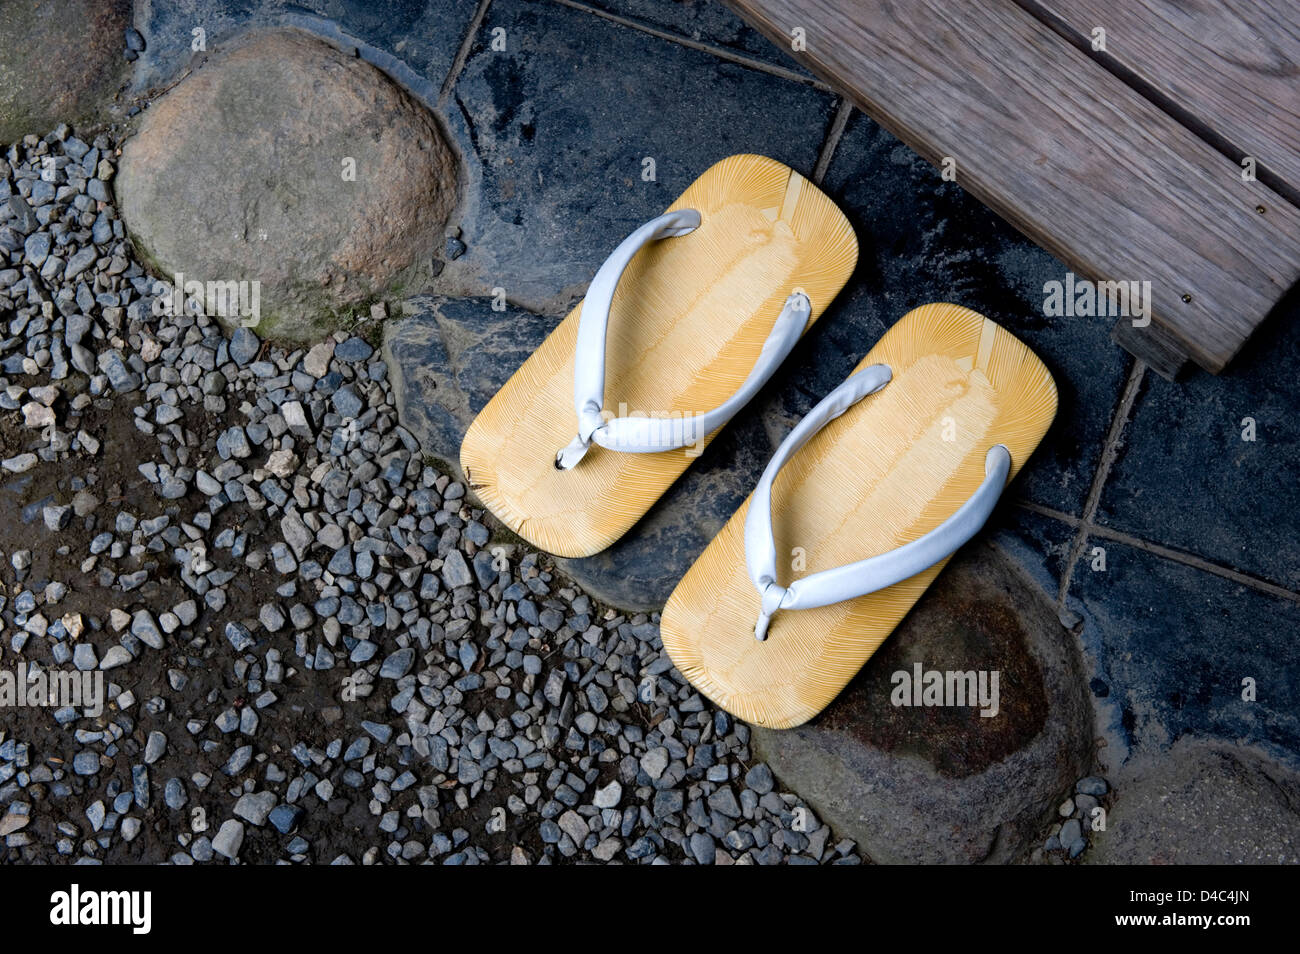 ebcfbadb335 A pair of monk s  zori  (sandals) that one must remove prior to